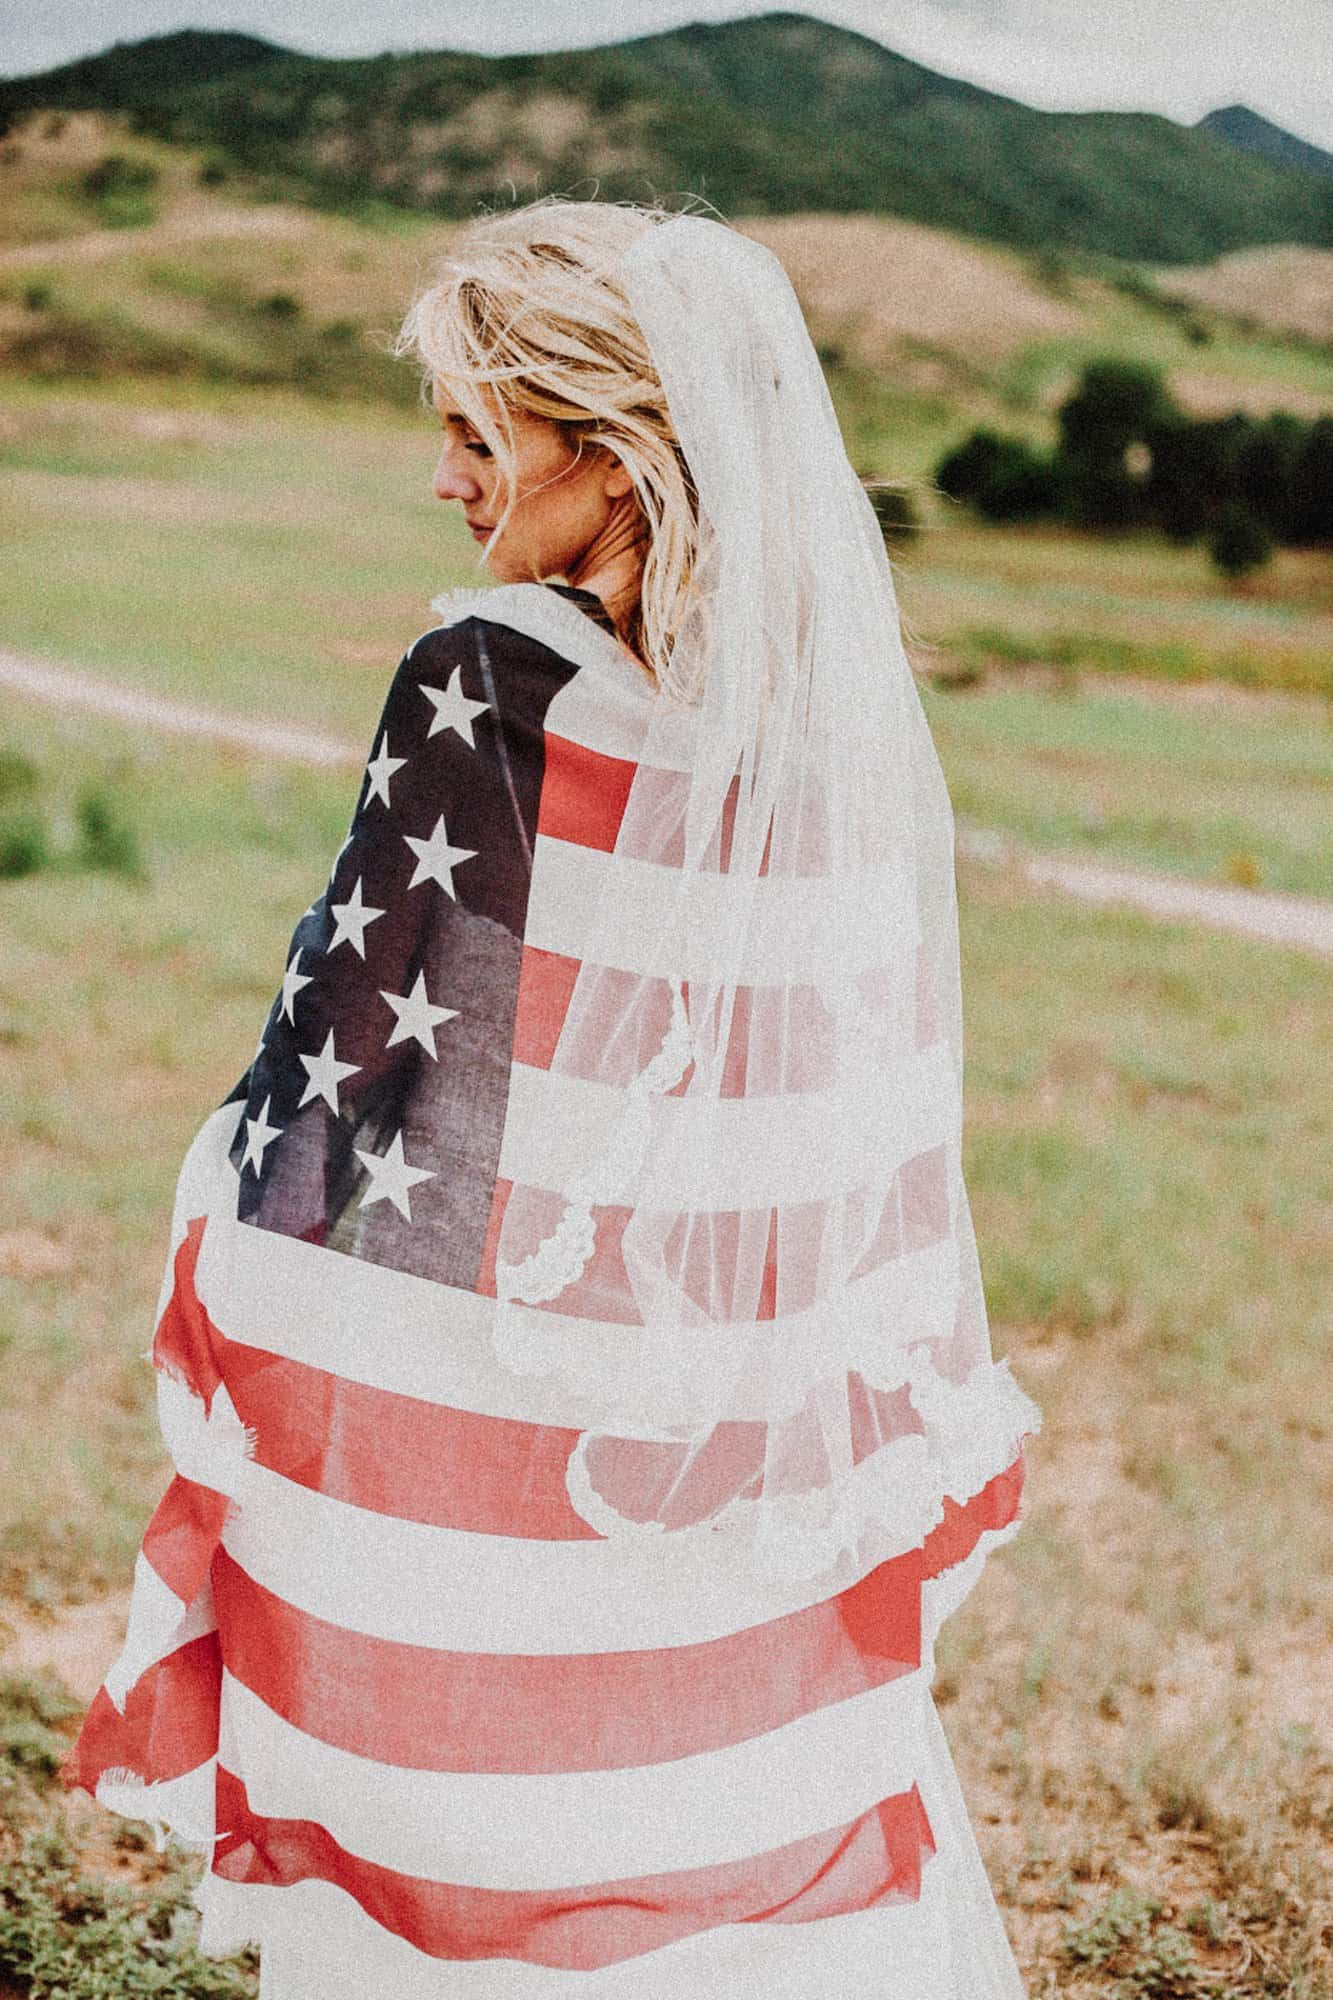 A bride covered in the US flag